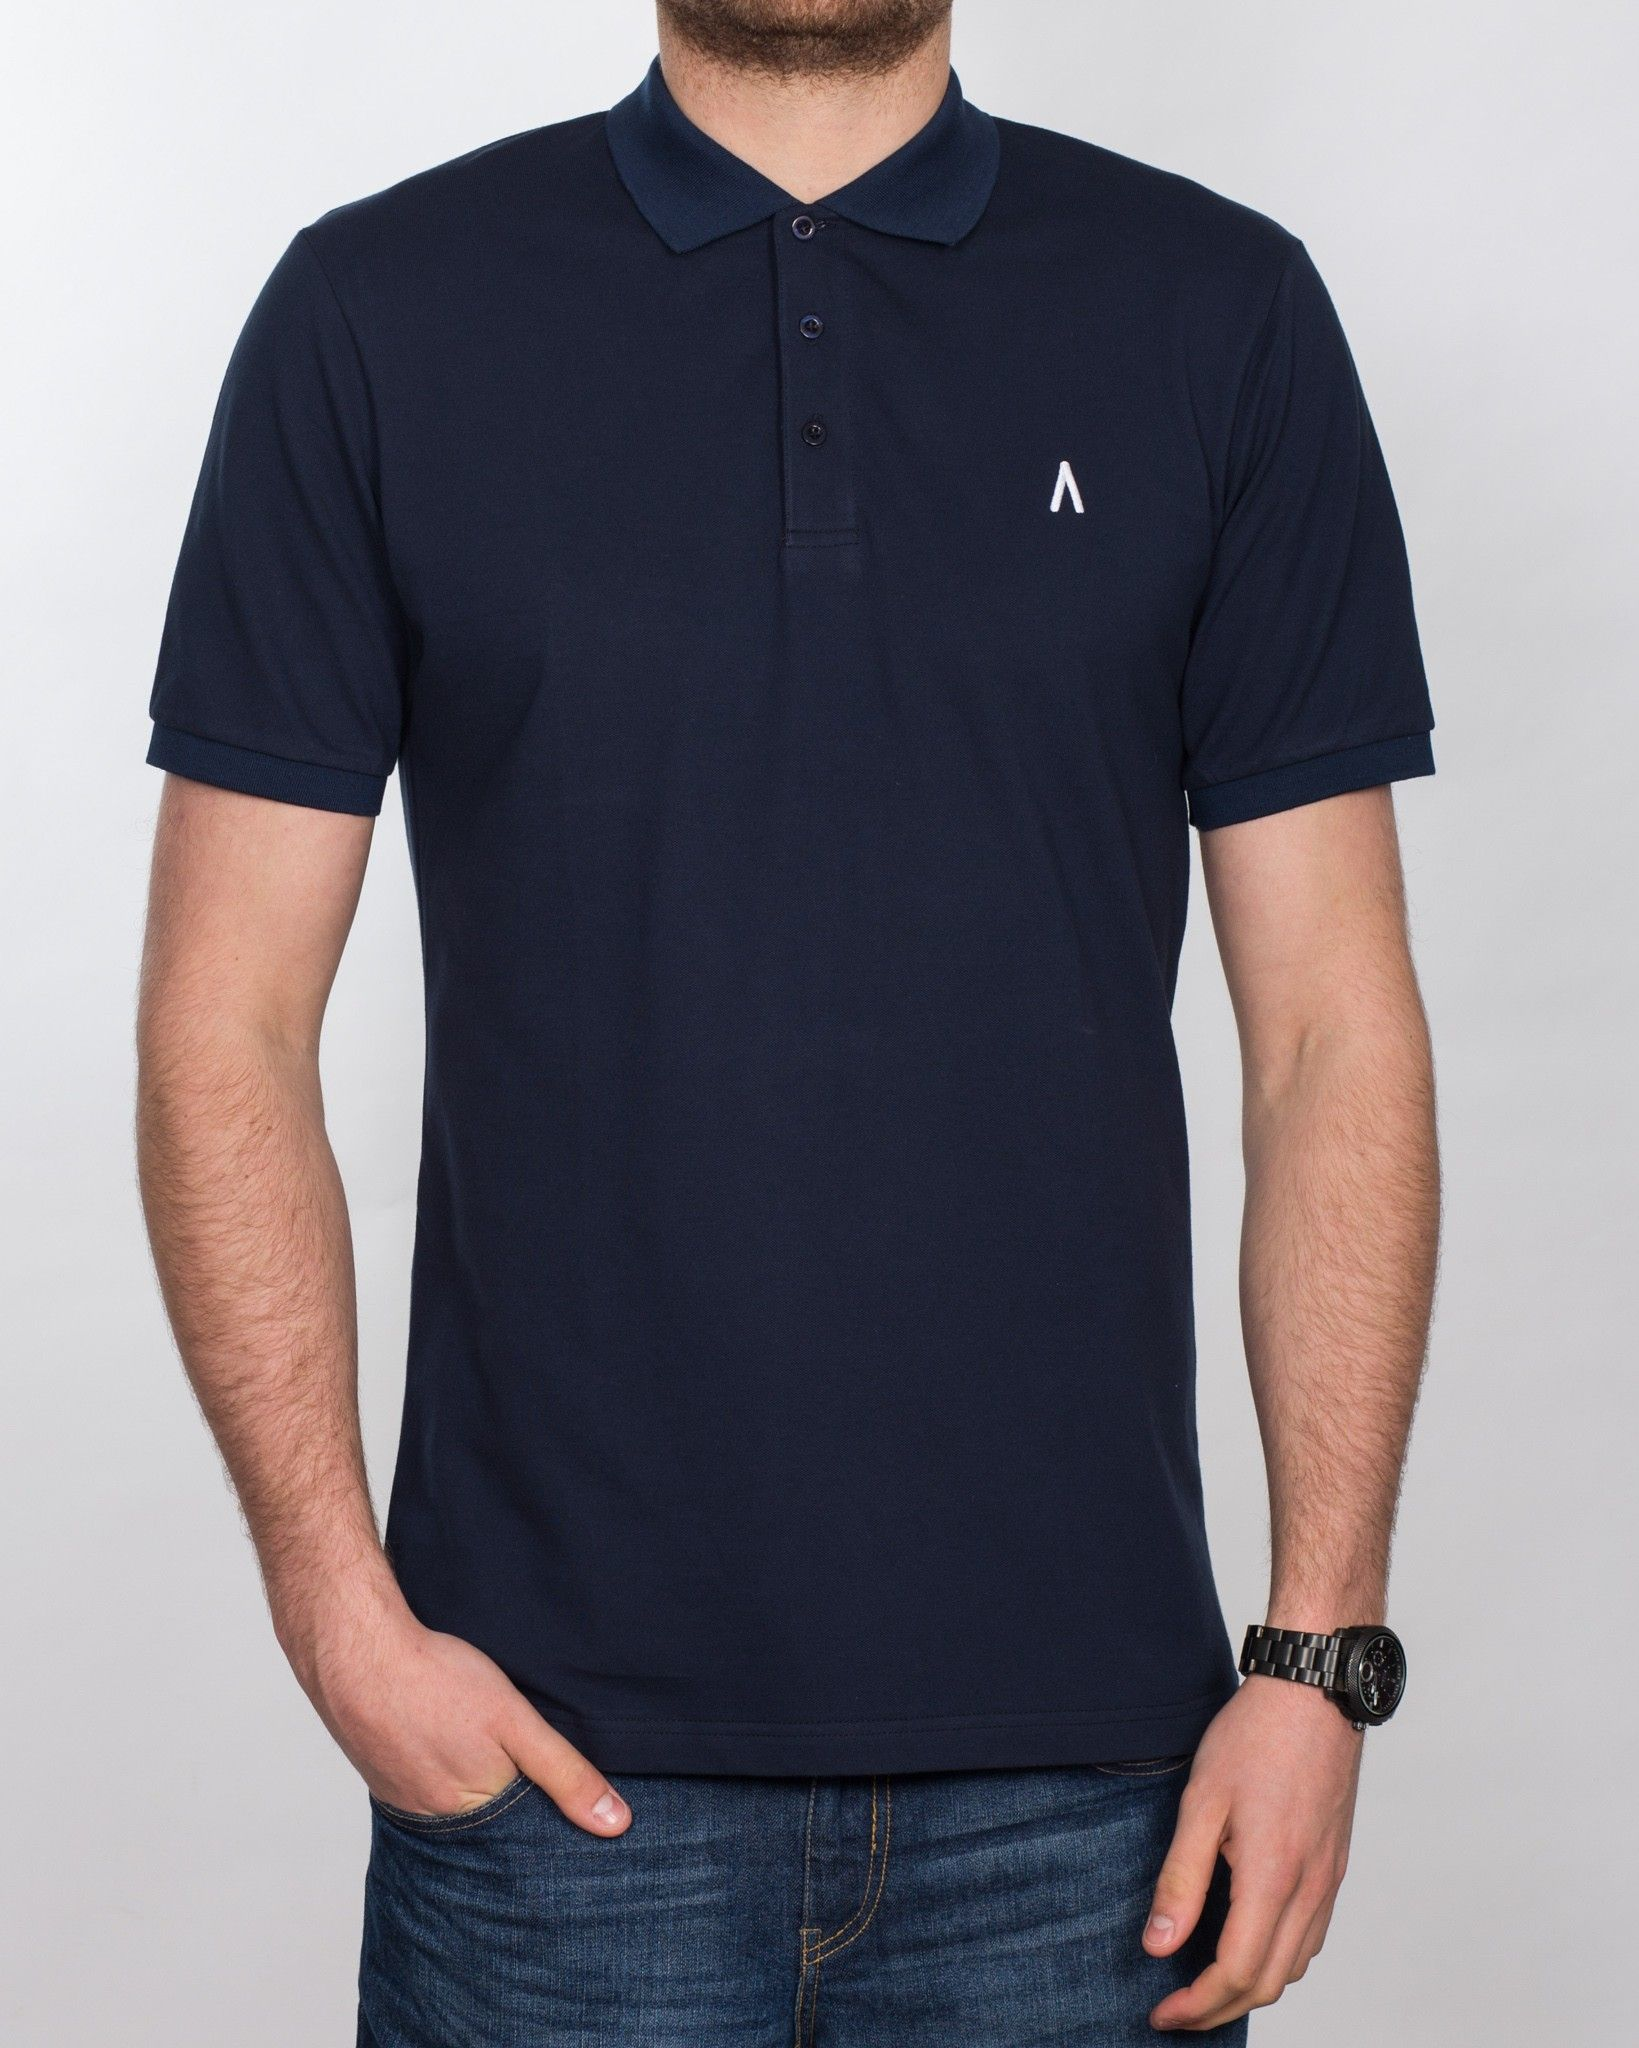 2t Slim Fit Tall Polo Shirt (navy) | Polo Shirts | Tops | Extra Tall Mens  Clothing | Size 13/14/15 Shoes